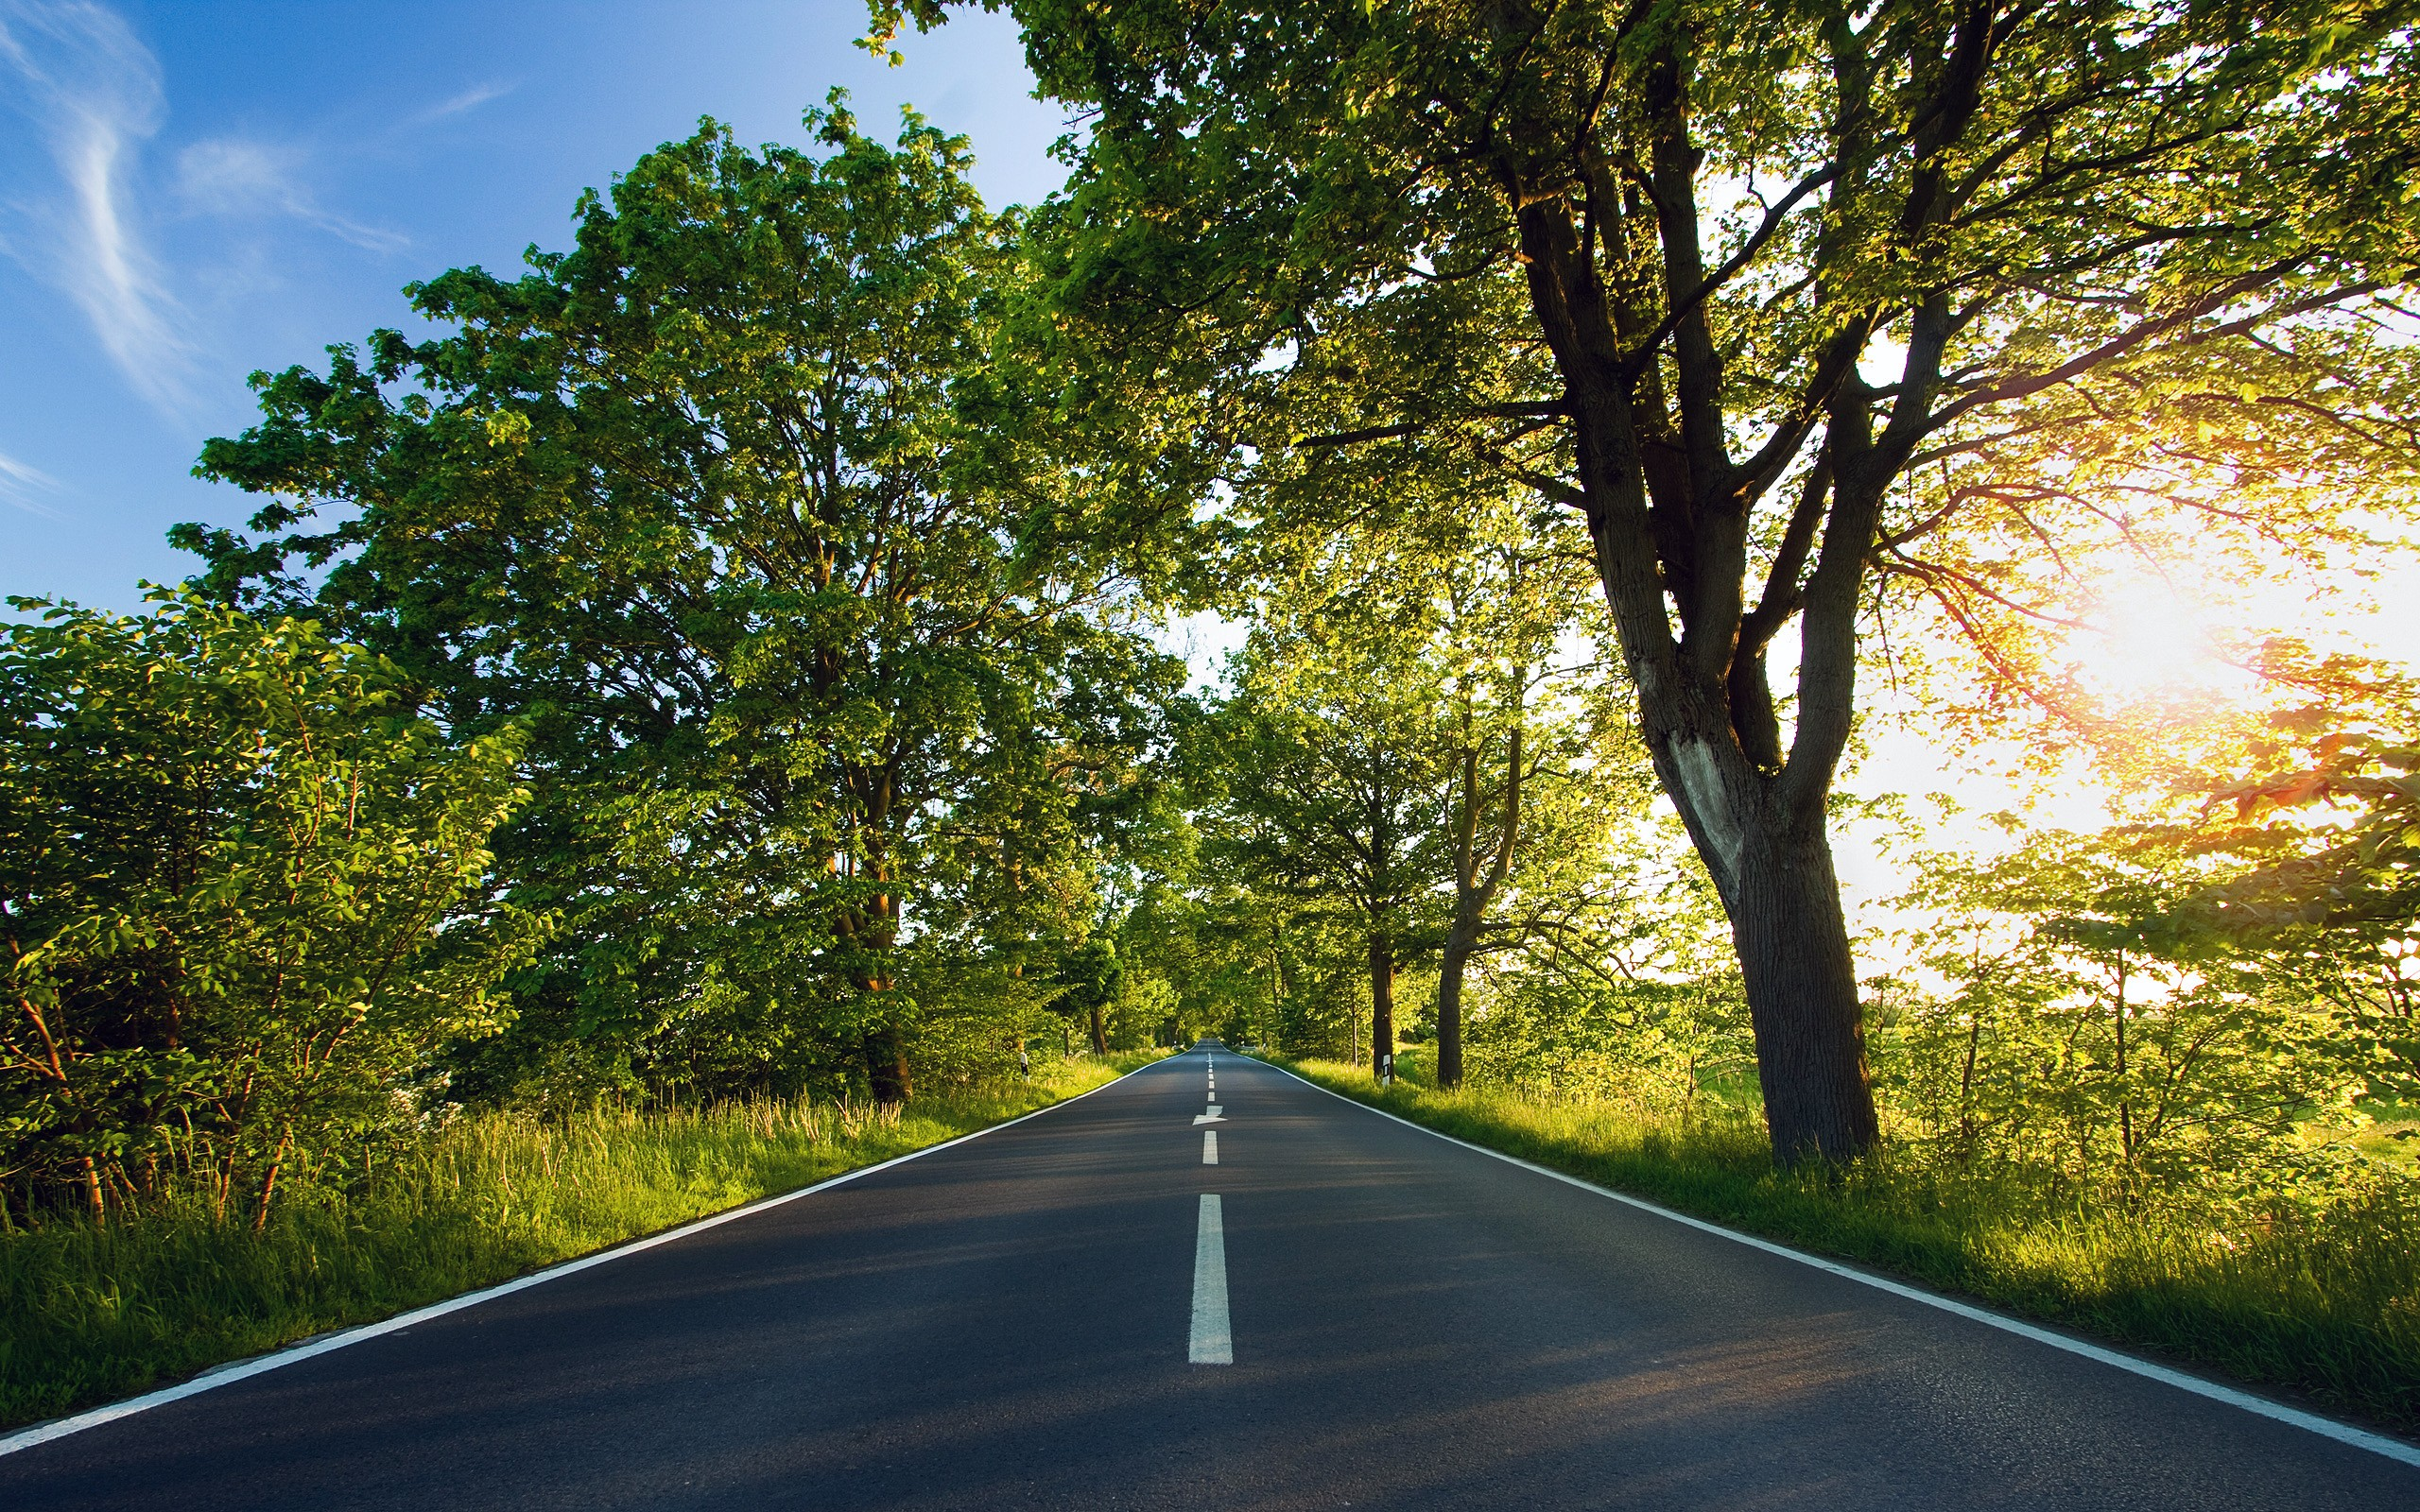 Image Summer Road Wallpapers And Stock Photos